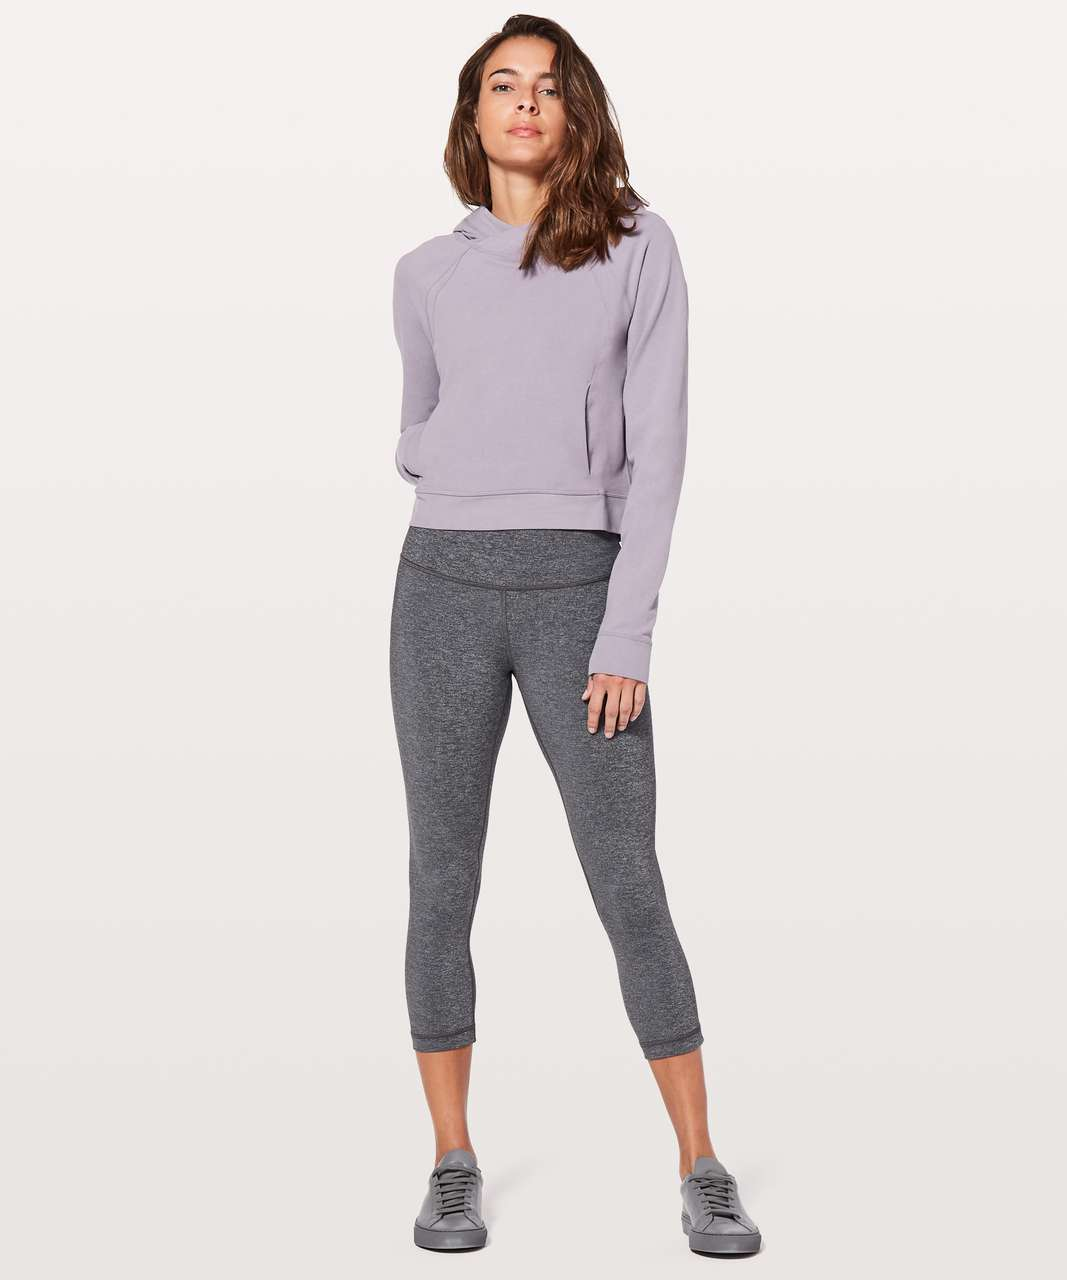 Lululemon Nice & Natural Popover - Dusty Dawn